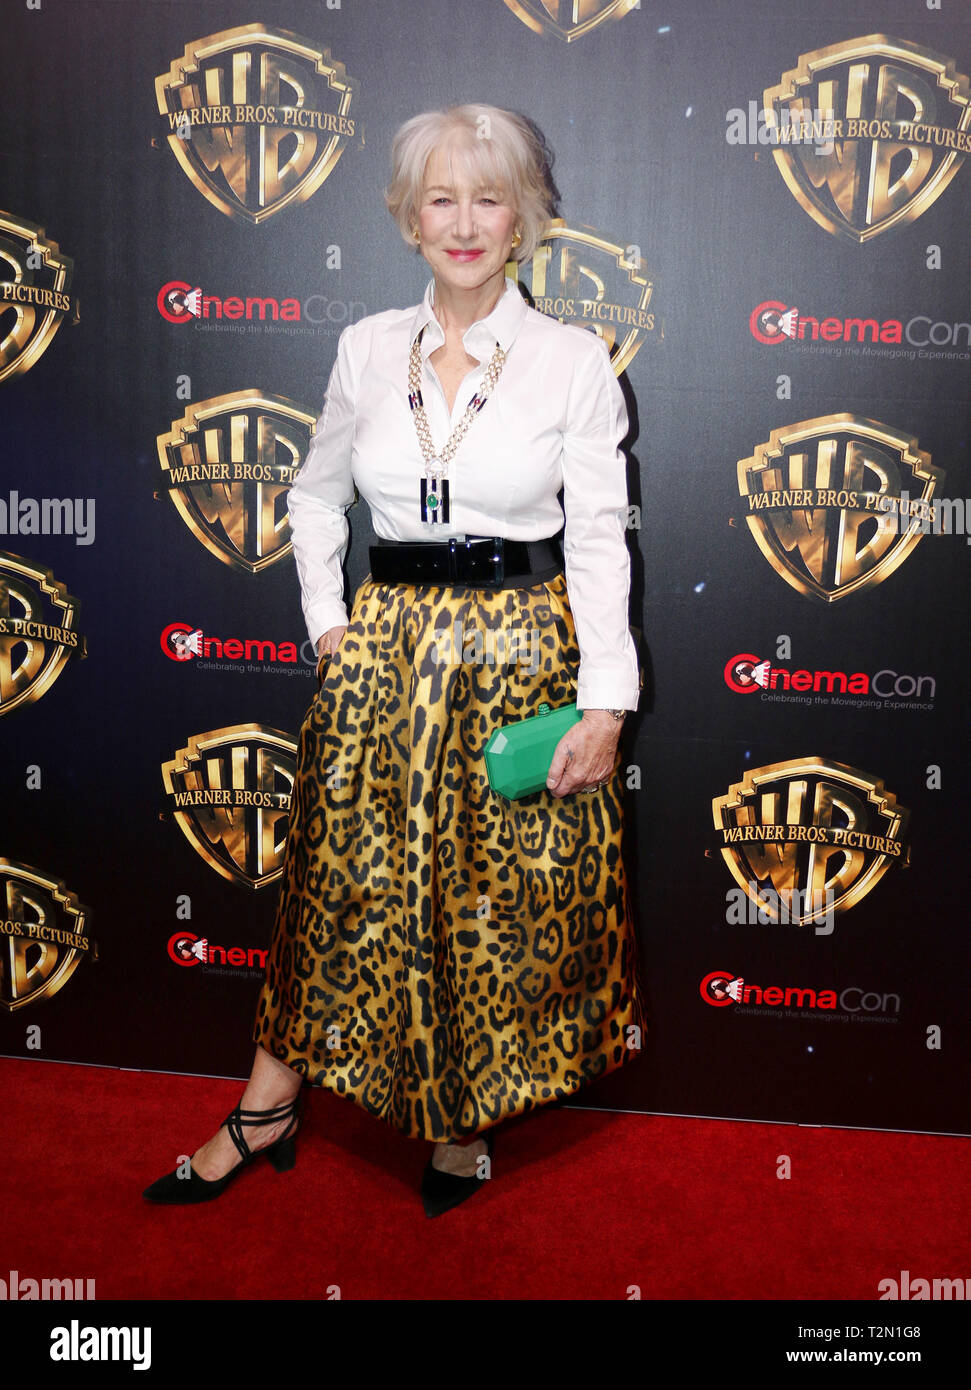 Las Vegas, USA. Apr 02, 2019. Helen Mirren au CinemaCon 2019 - Warner Bros Pictures 'The Big Picture' Présentation tenue au Caesars Palace à Las Vegas, USA le 2 avril 2019. Photo : Alamy/Hyperstar Live News Photo Stock